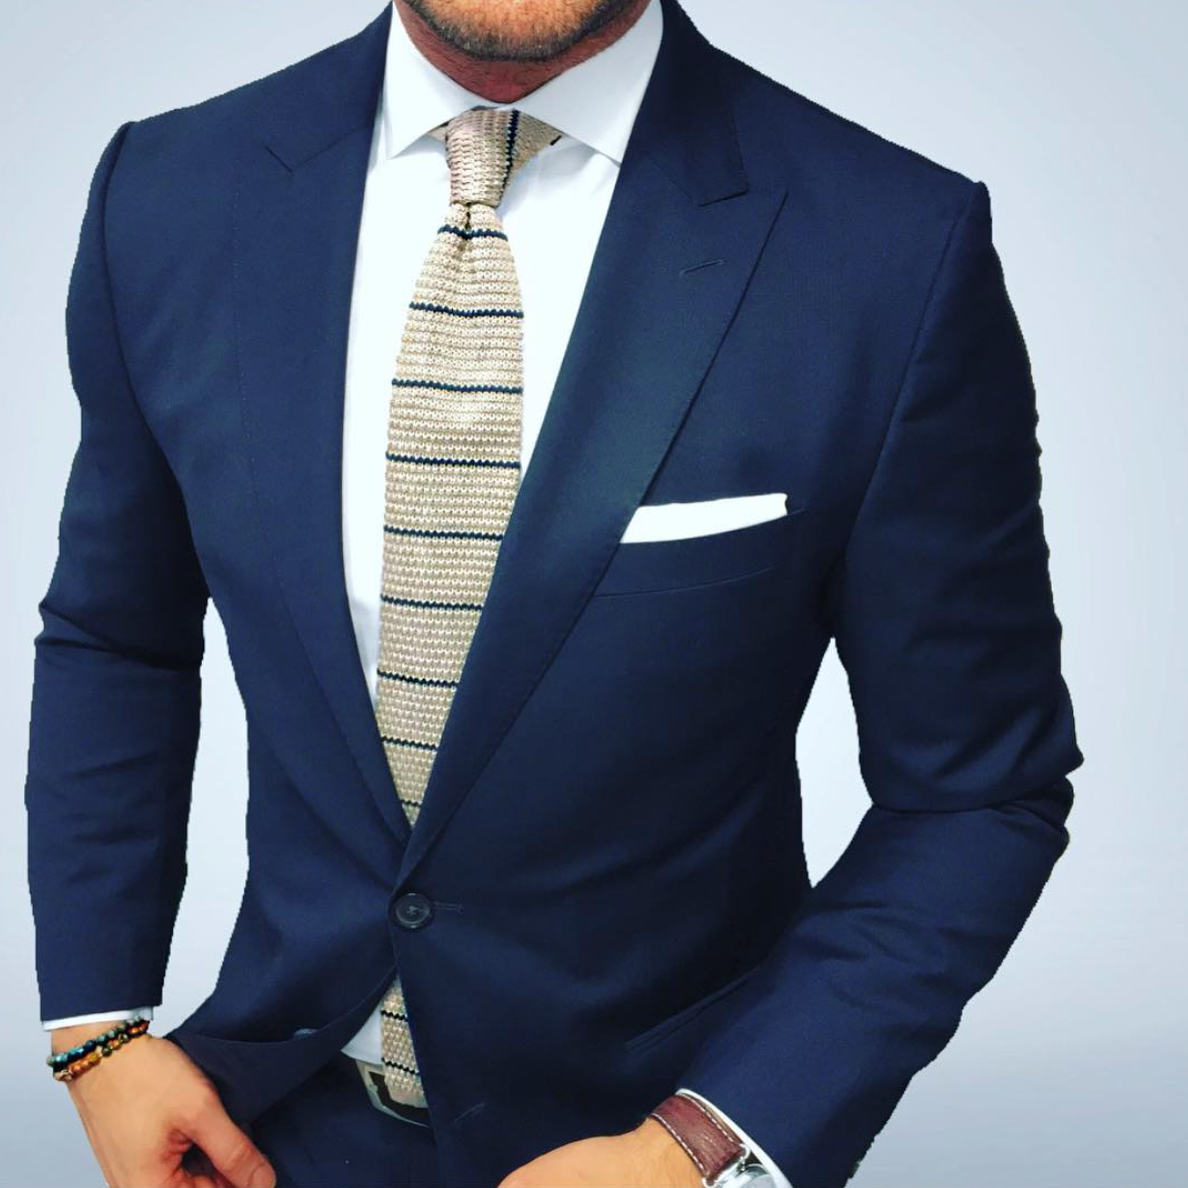 Cotton Knit Tie in Gray with Navy Stripes | Knit tie ...